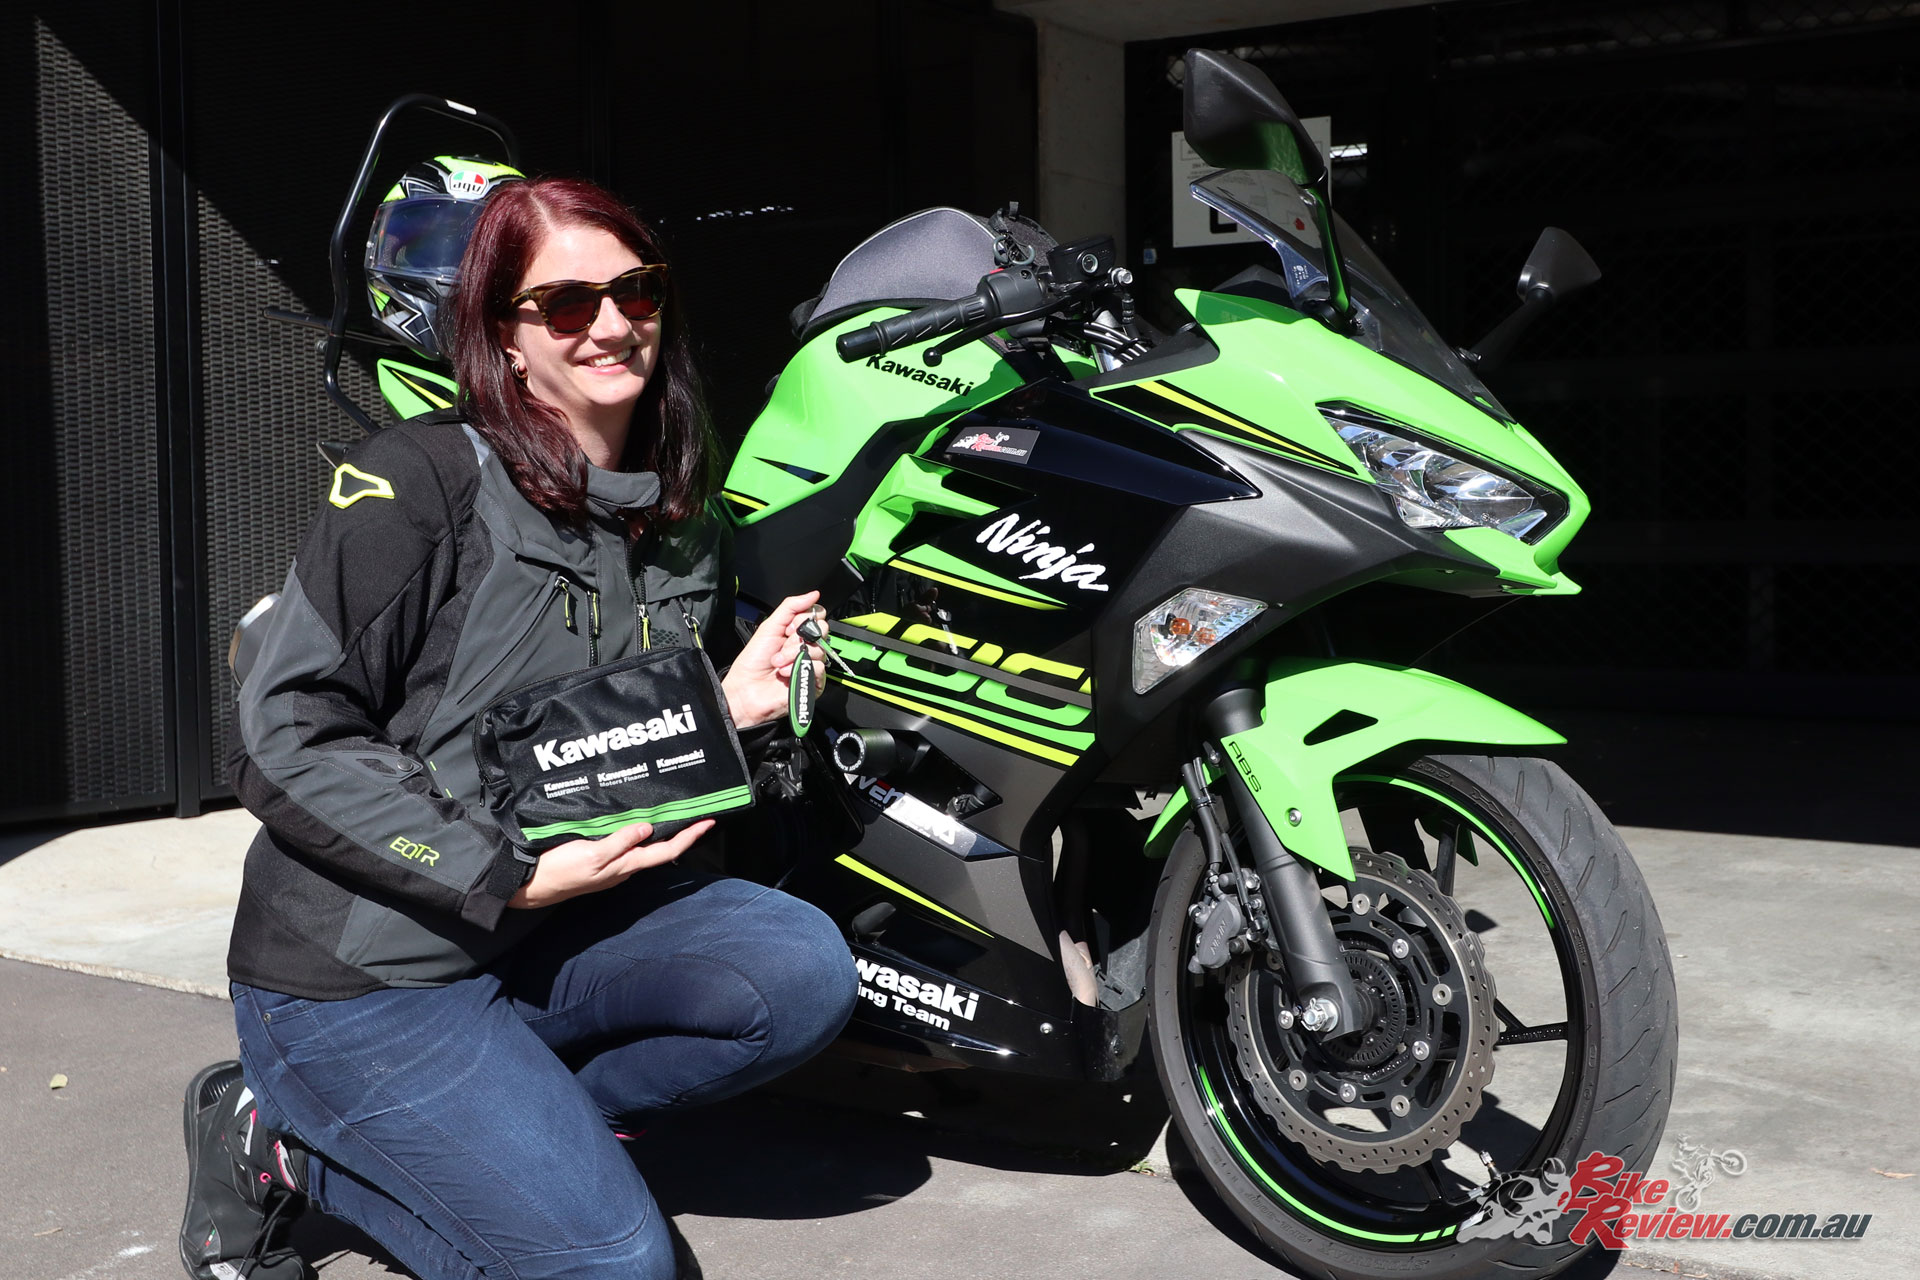 All smiles on officially getting the keys to our Project Ninja 400!